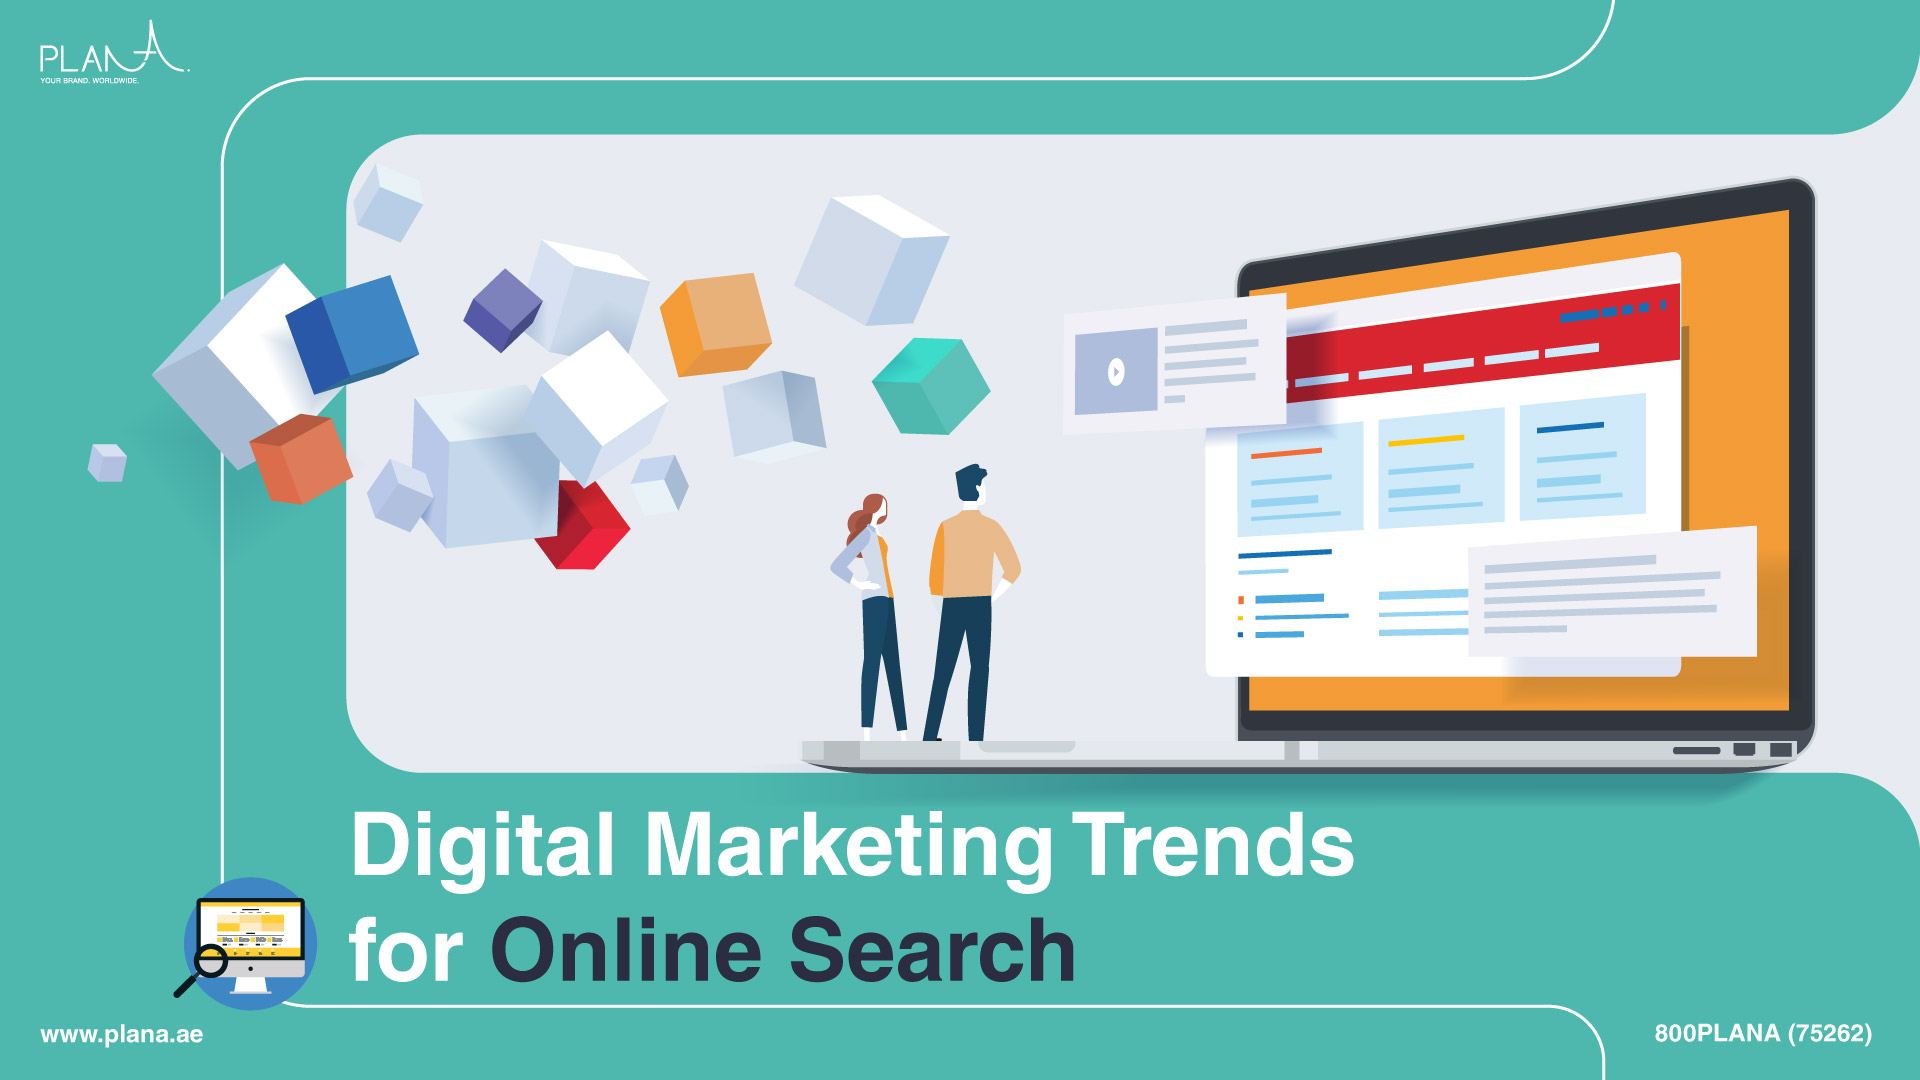 Digital Marketing Trends for Online Search